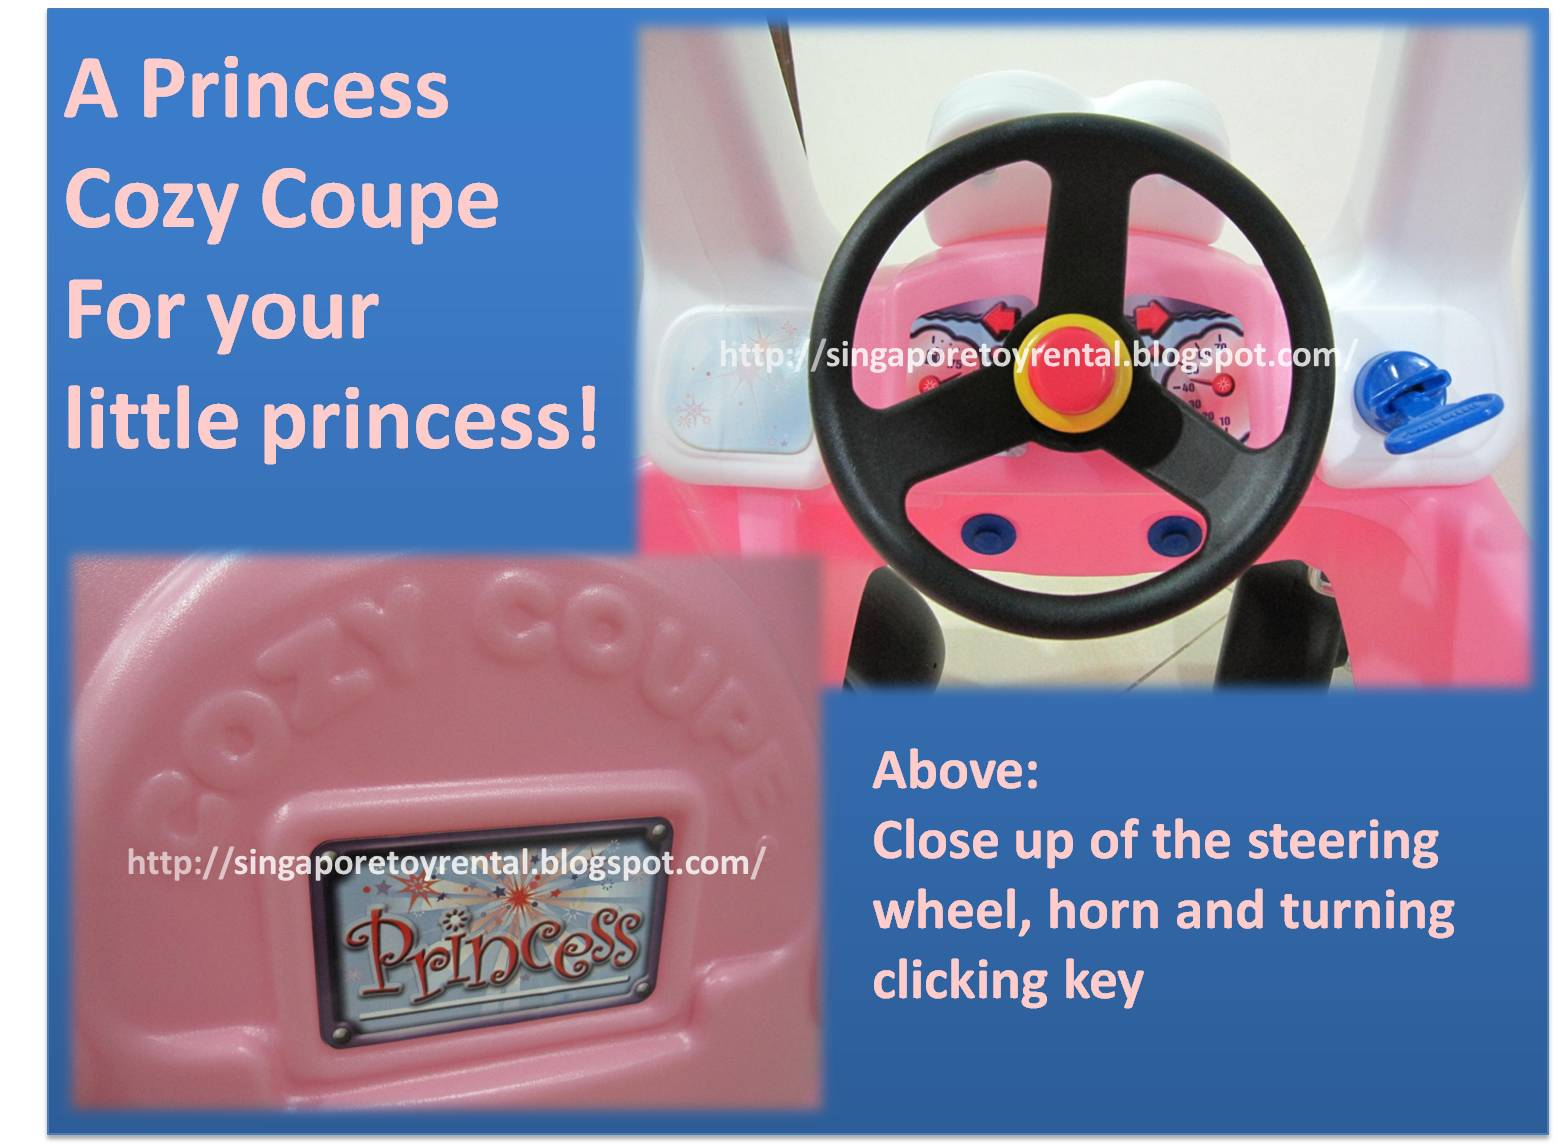 Singapore Toy Rental Princess Cozy Coupe 174 30th